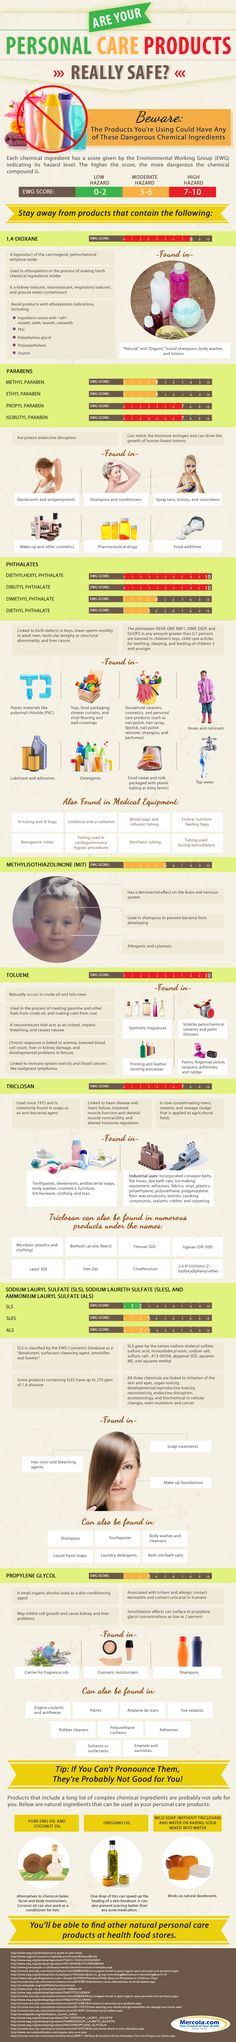 Are Your Personal Care Products Really Safe> #infographic